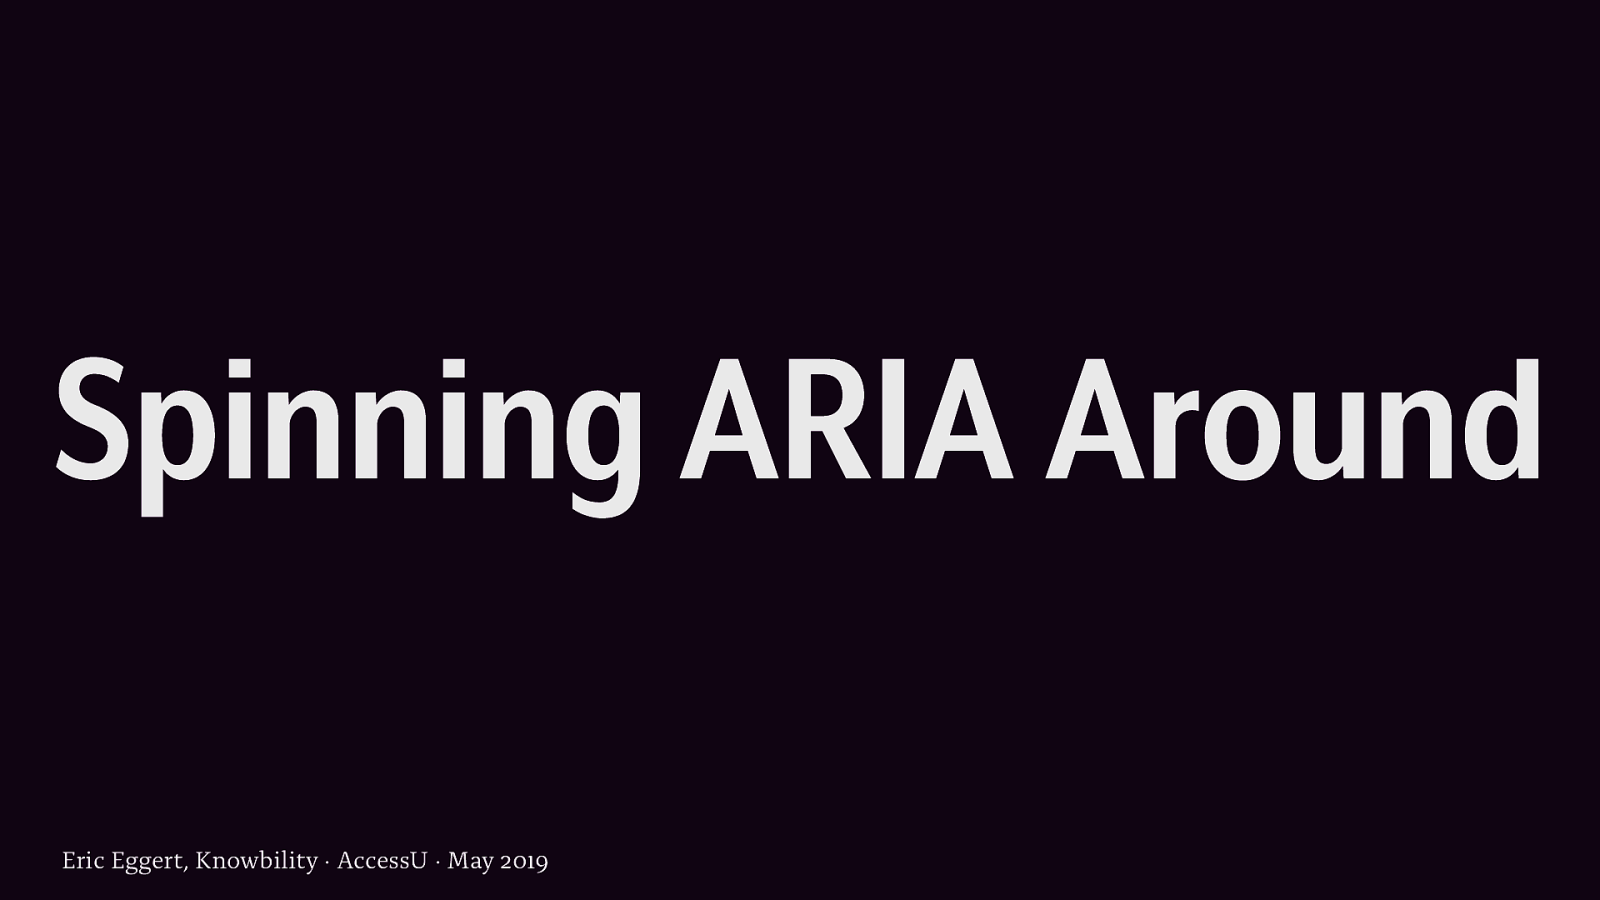 Spinning ARIA Around